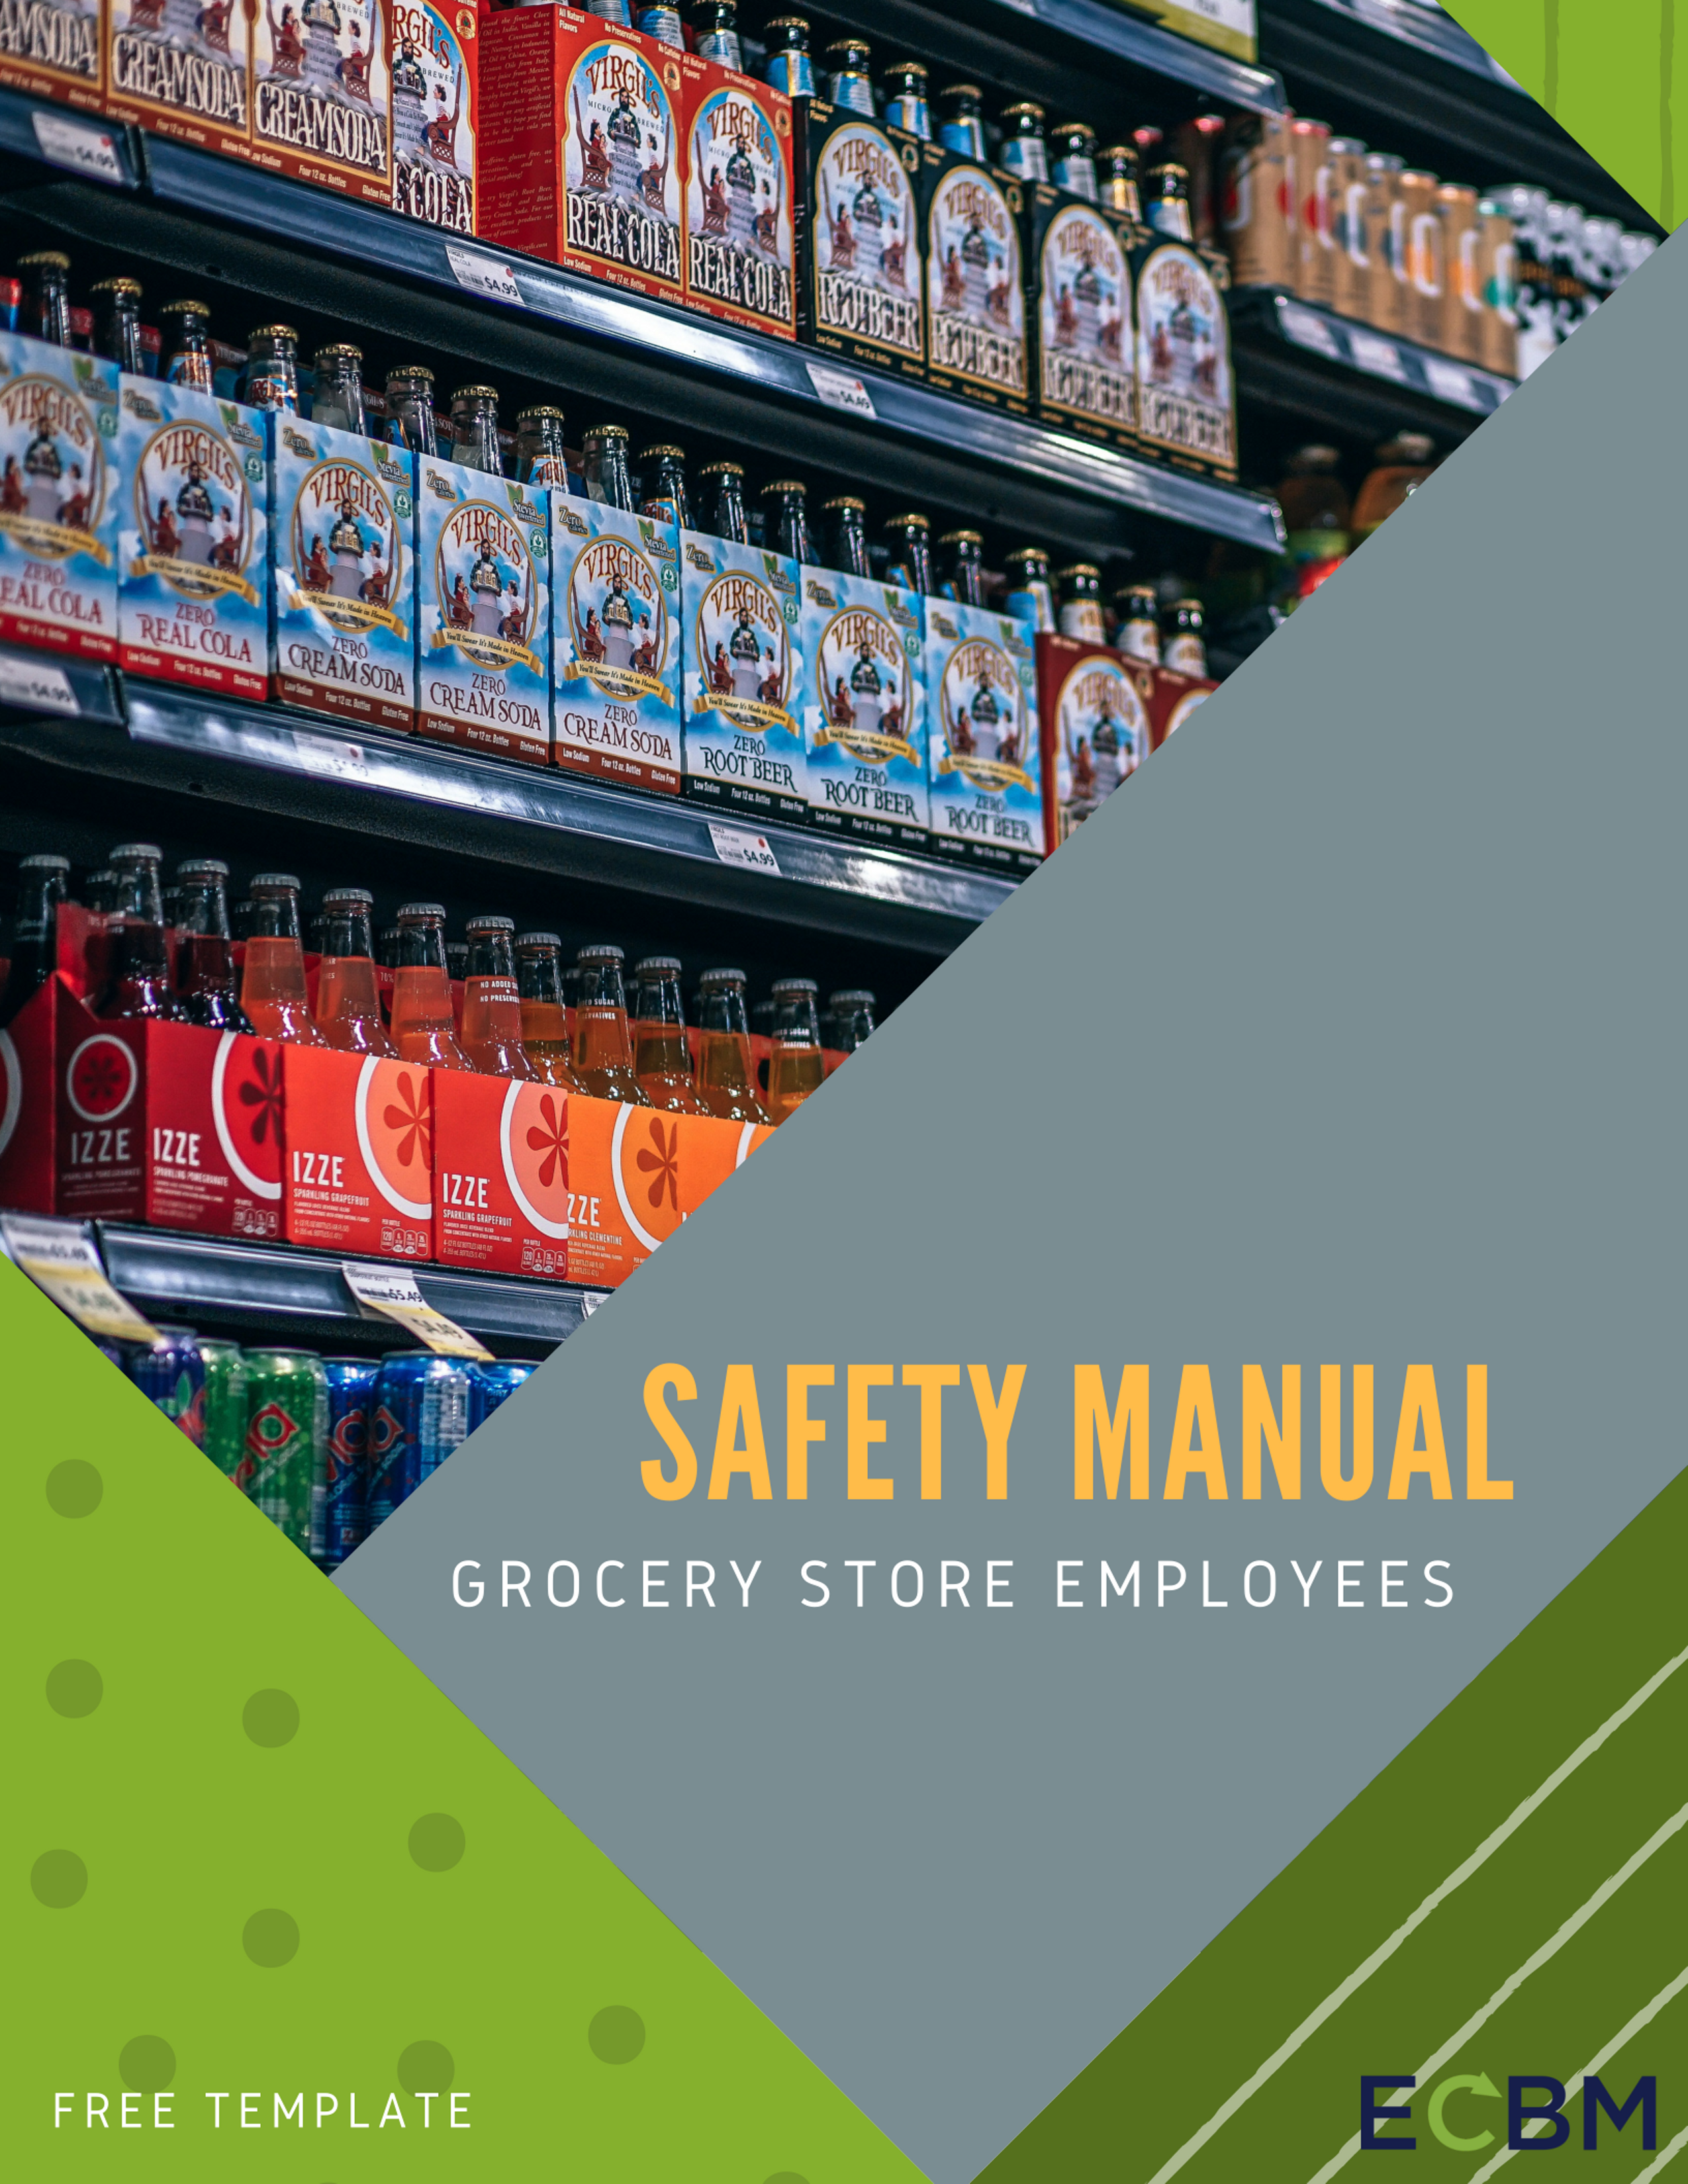 safety manual grocery store employees manual image-1